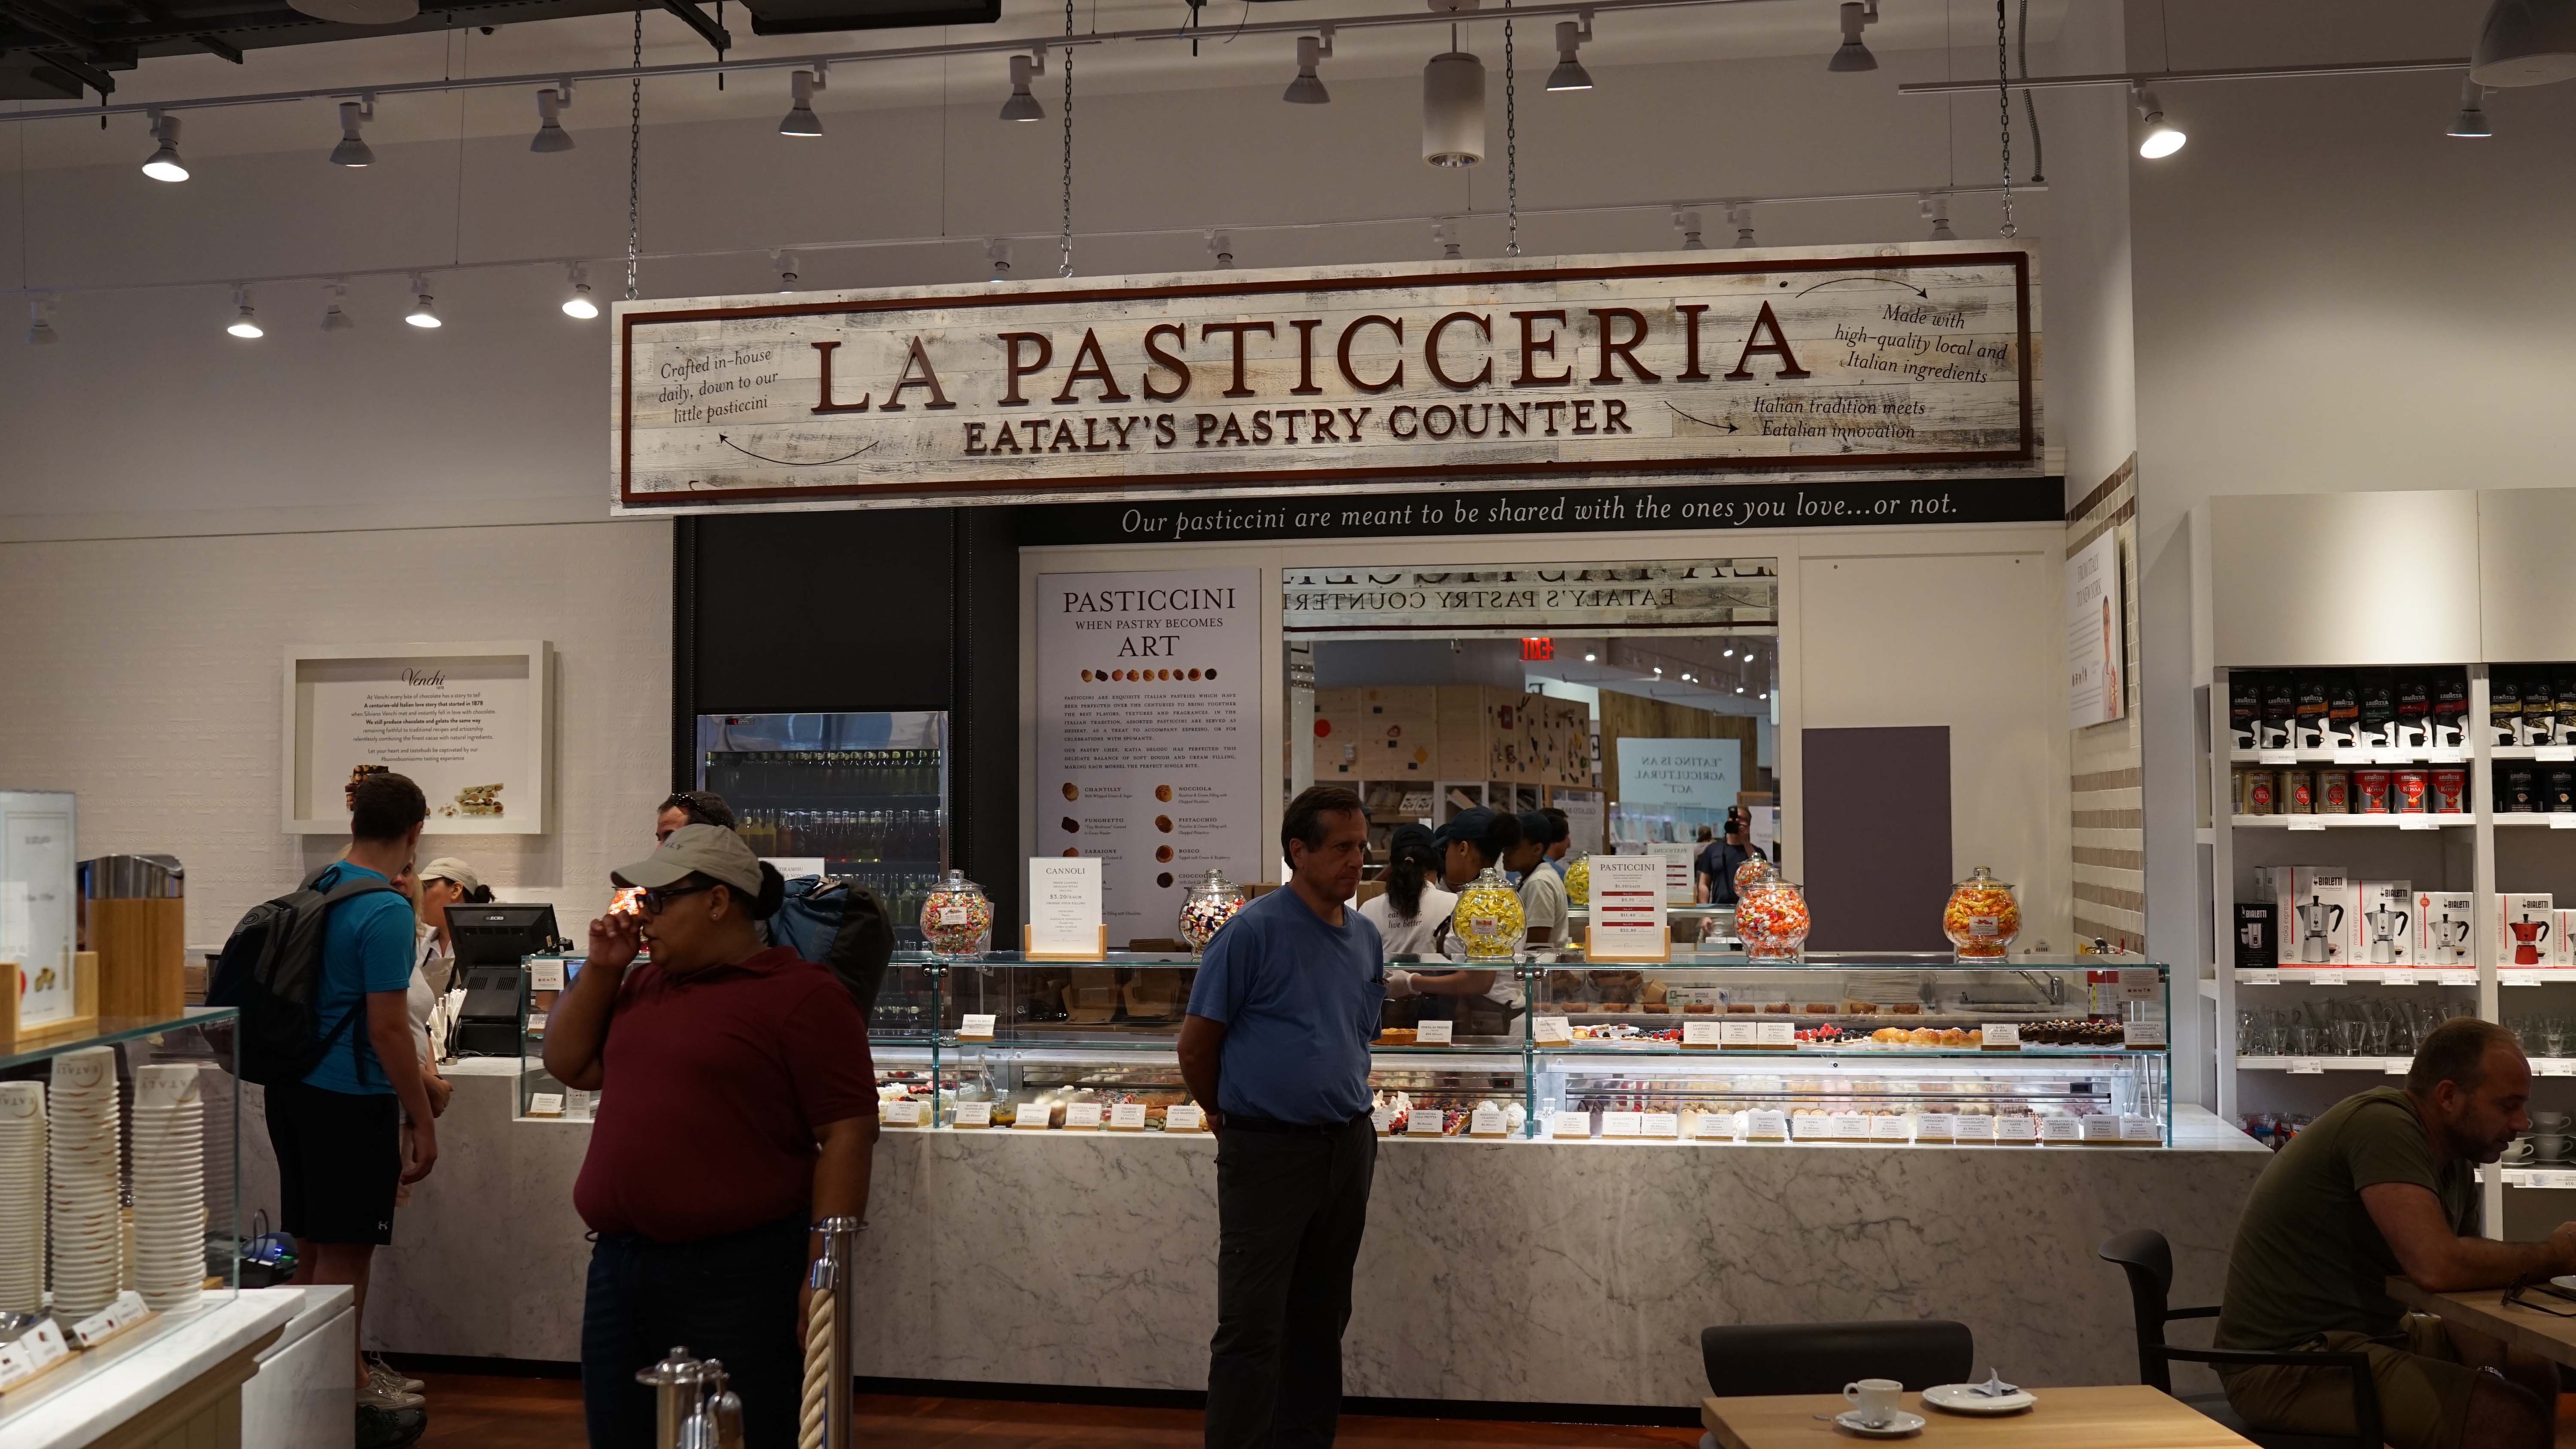 Eataly pastry section